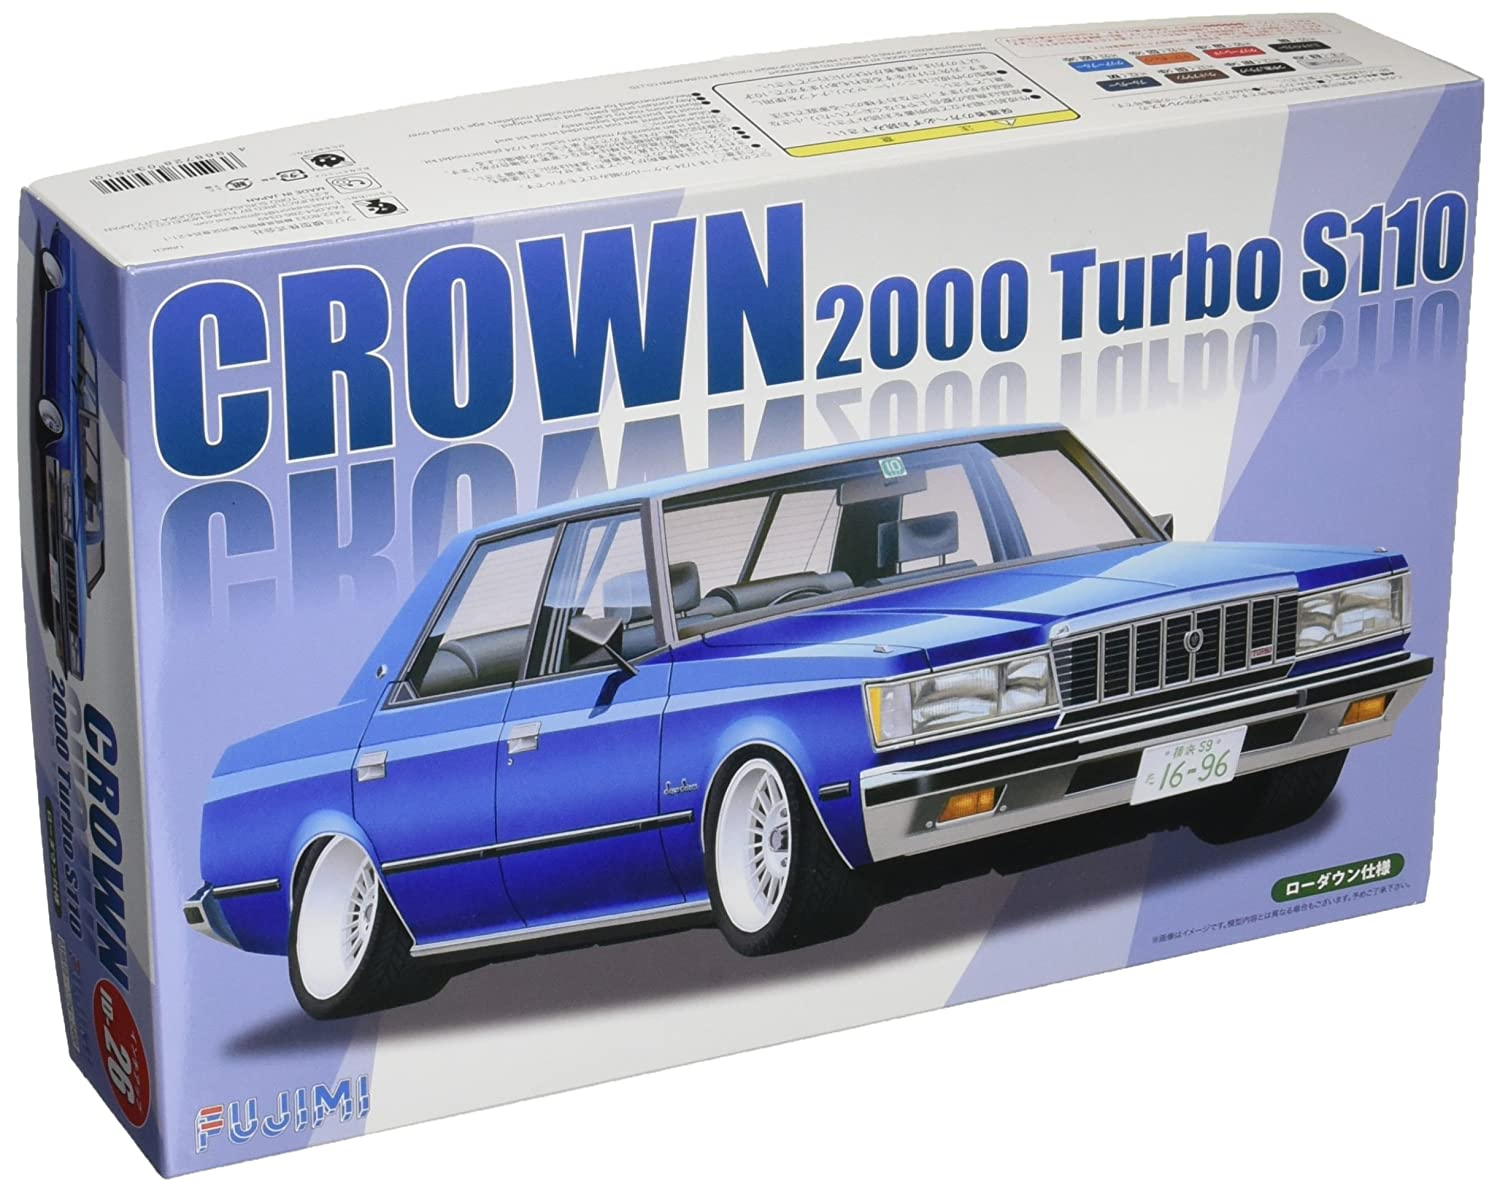 Fujimi Modell 1. 1. 1. 2.4. -Zoll Up Serie No.2.6. Toyota Crown 2.000 Turbo S1.1.0 Kunststoff-ID-2.6. 702222